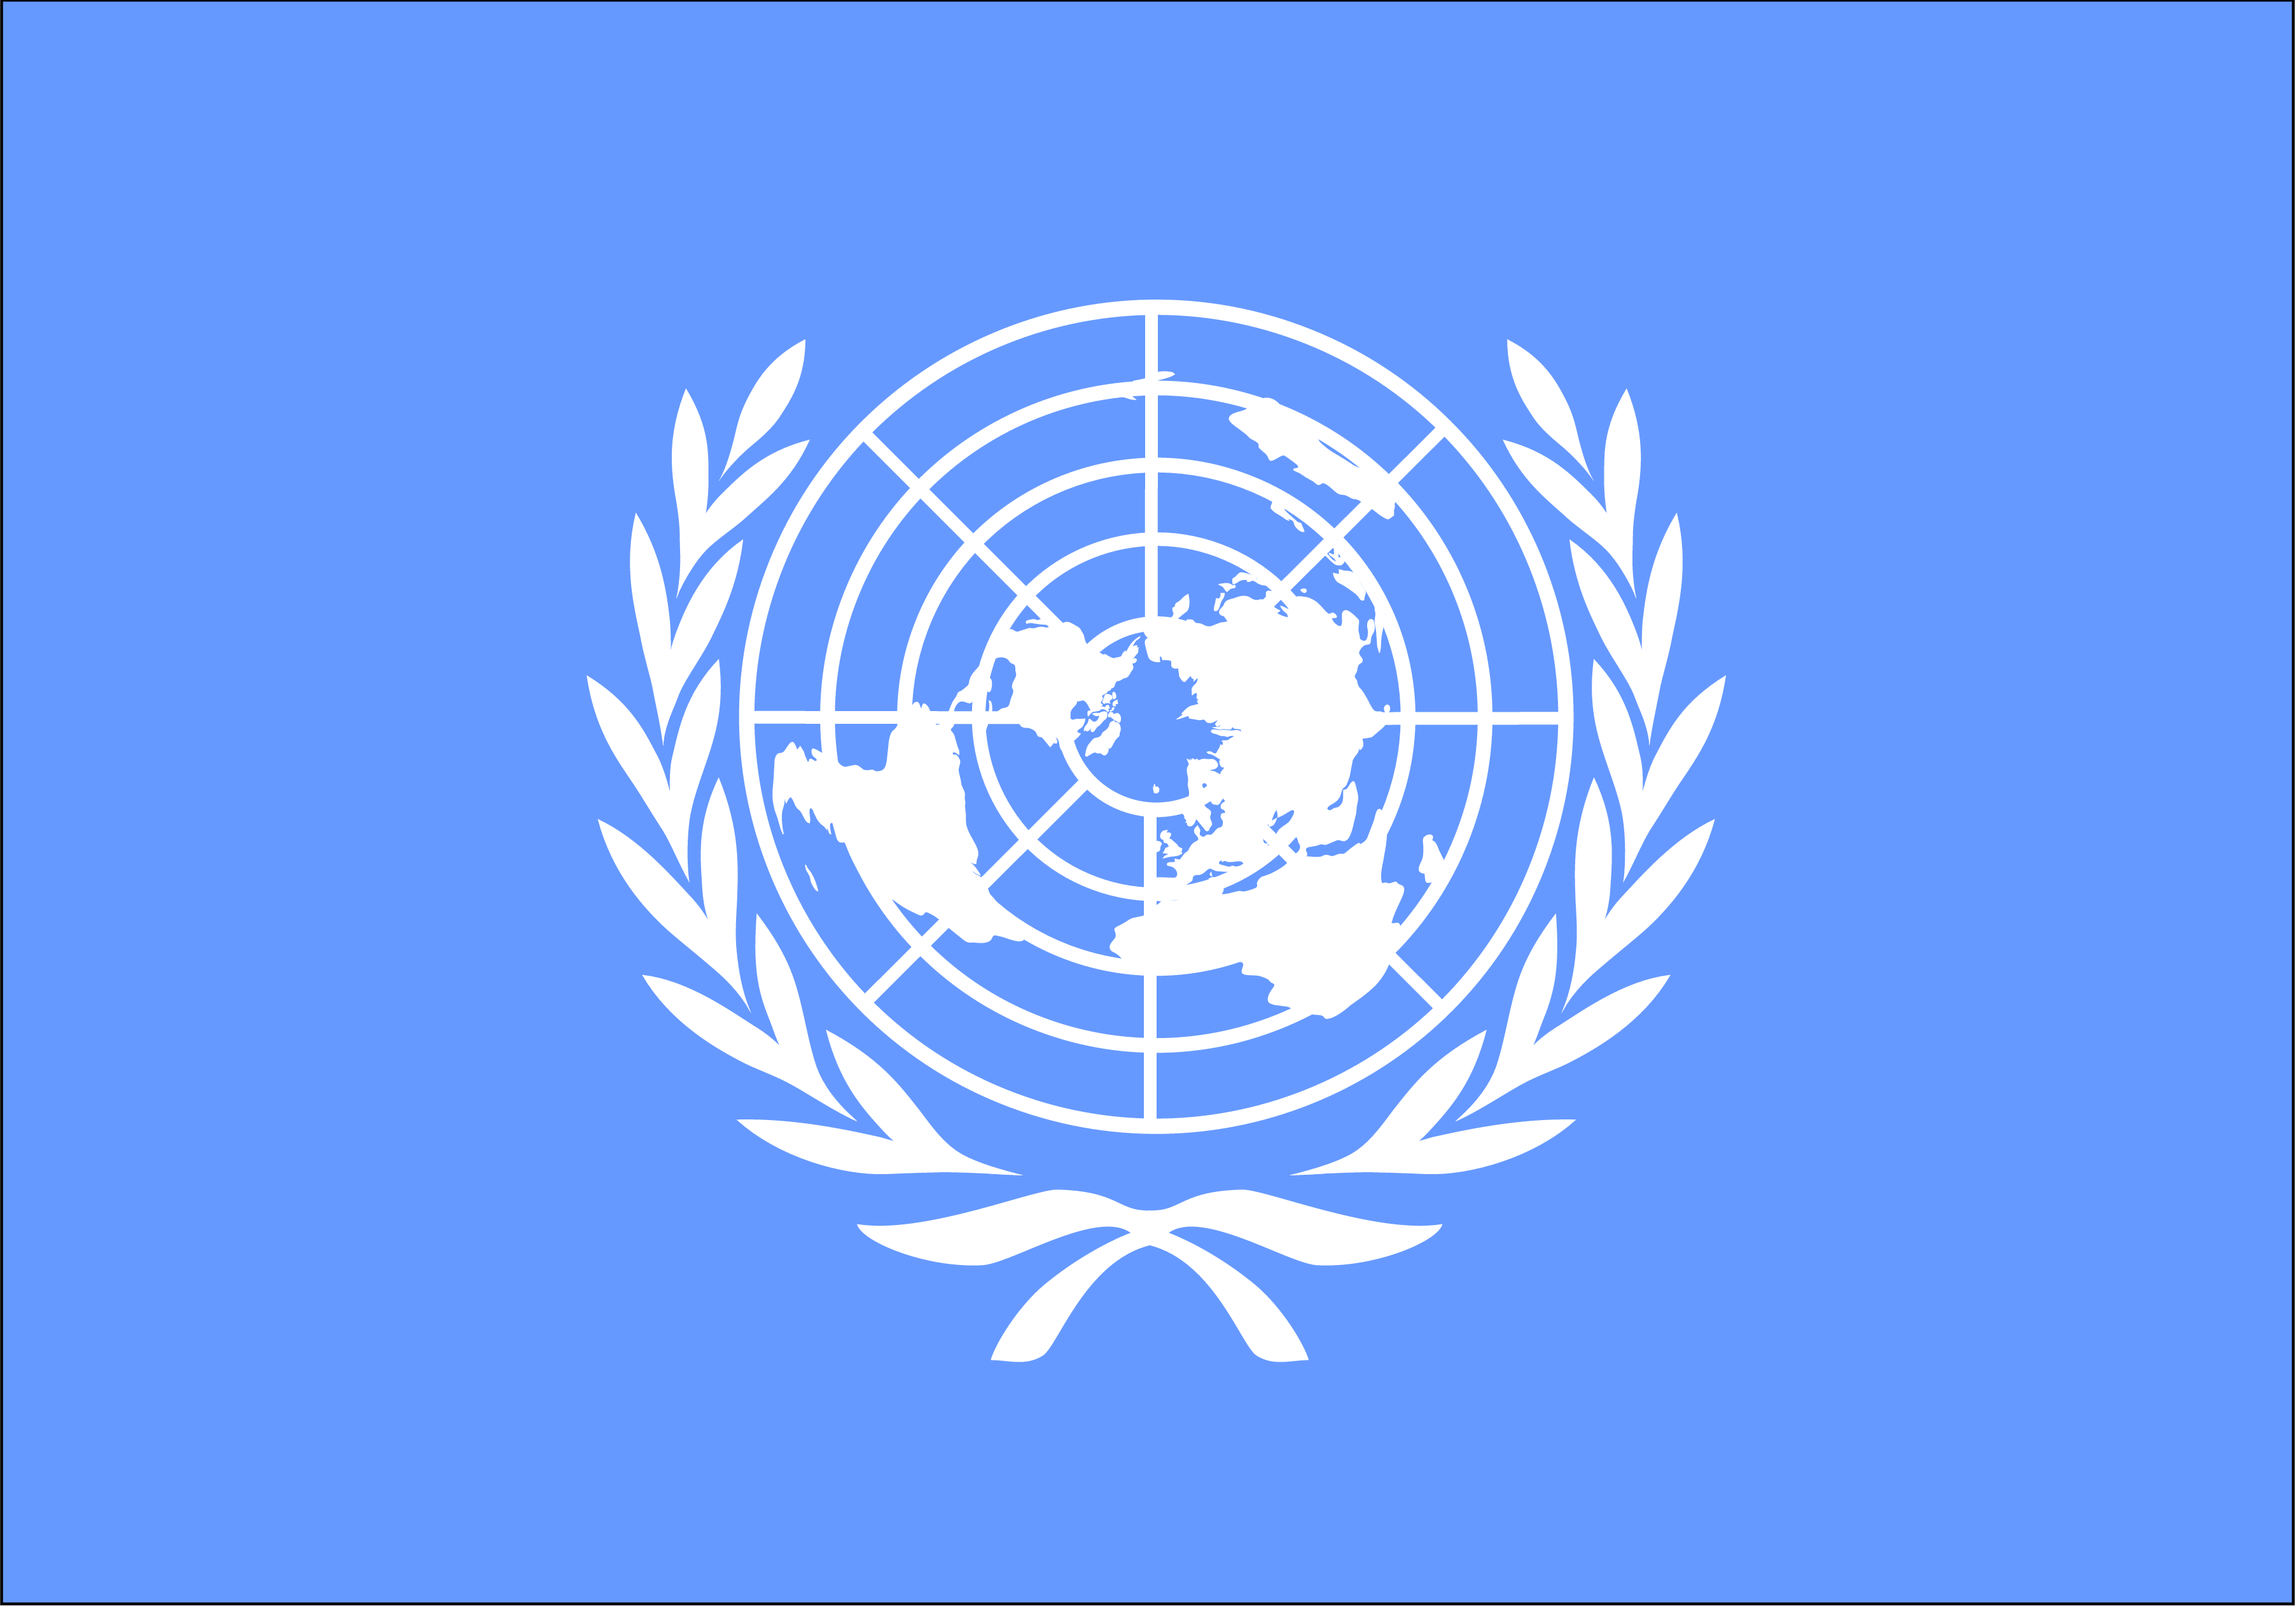 United Nations Members Flags FIABCI AND THE ONU - F...